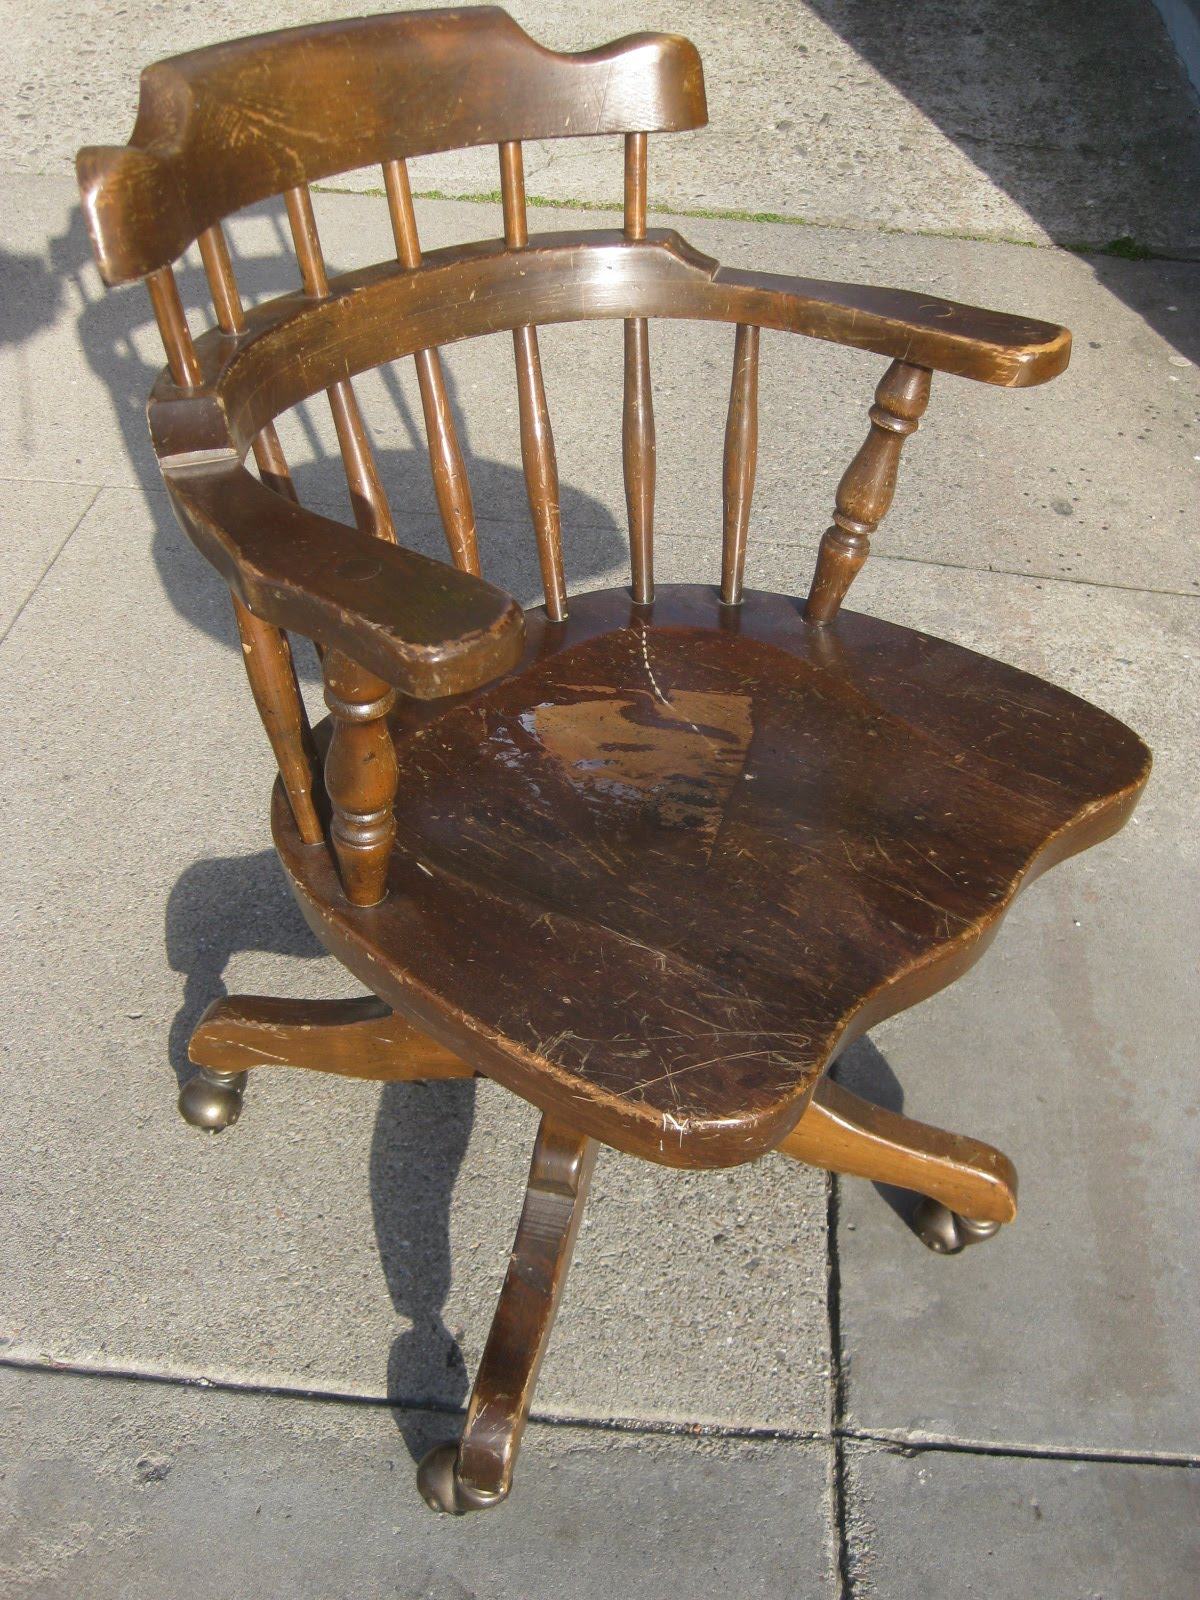 UHURU FURNITURE & COLLECTIBLES: SOLD - Wooden Office Chair - $35